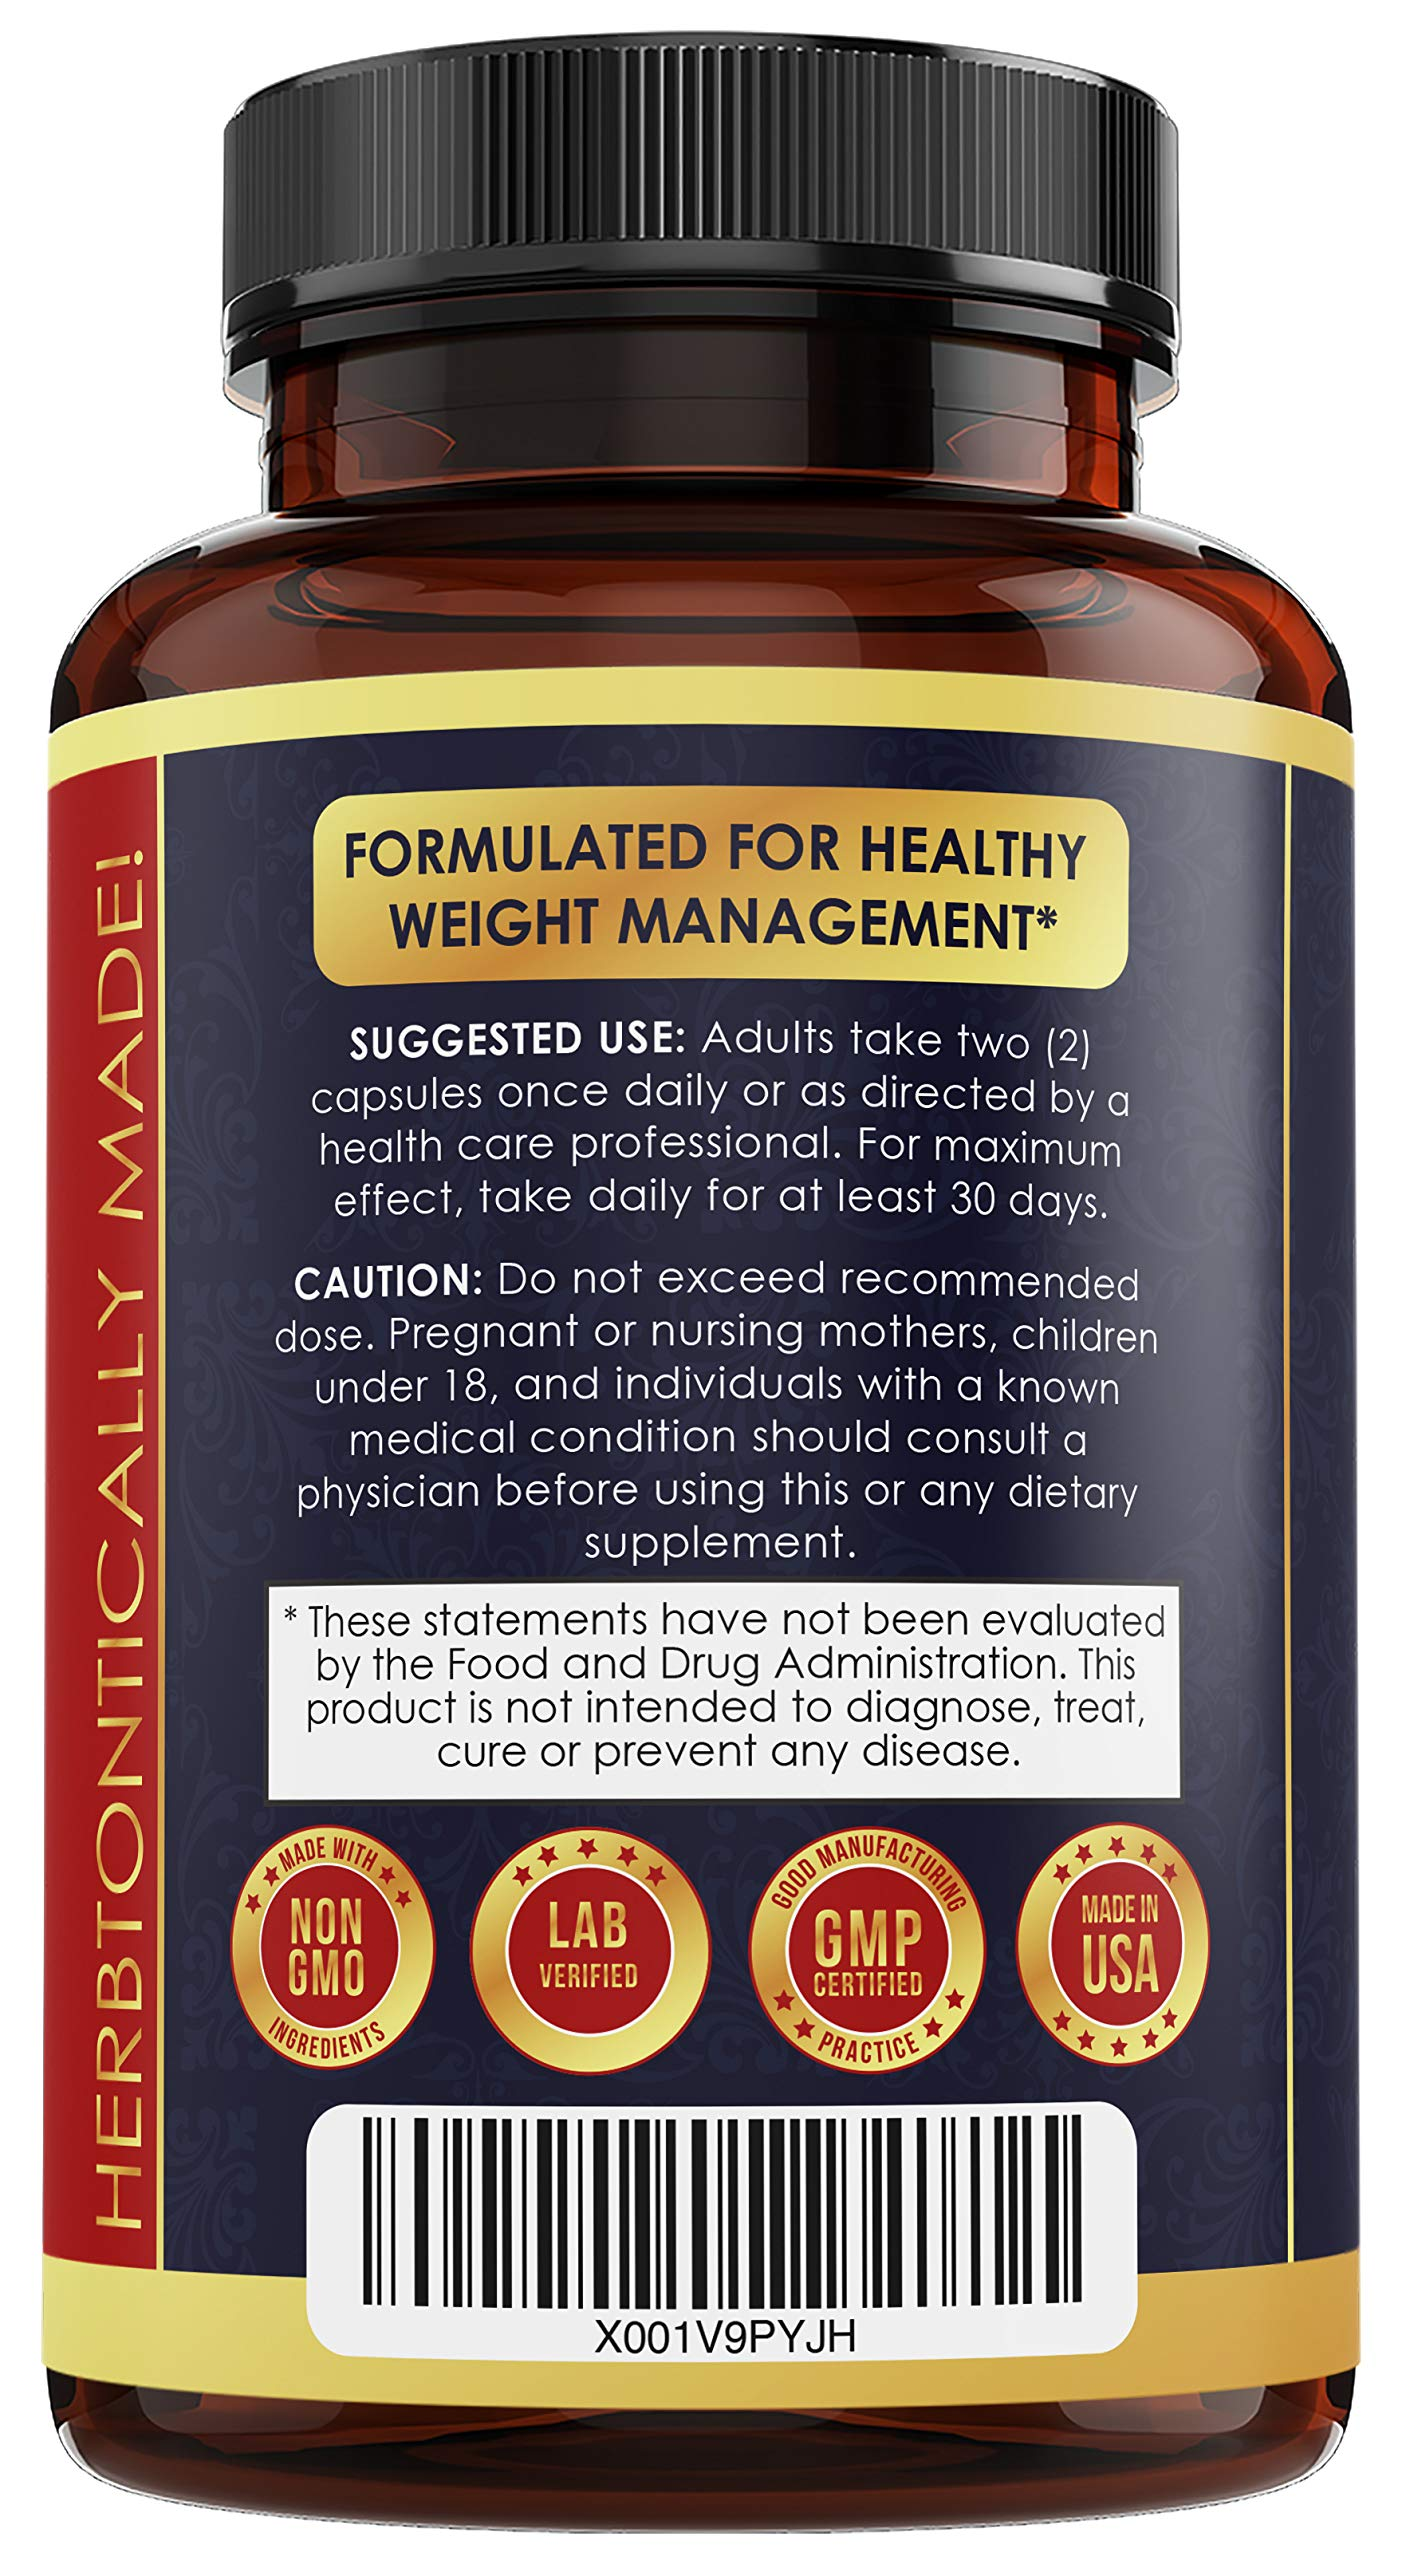 5X Potent Apple Cider Vinegar Capsules with Mother + BHB Salts Keto Diet Pills with MCT Oil, Fat Burner and Weight Loss Supplement Formula Keto for Women Men Appetite suppressant ACV Detox Support by herbtonics (Image #3)